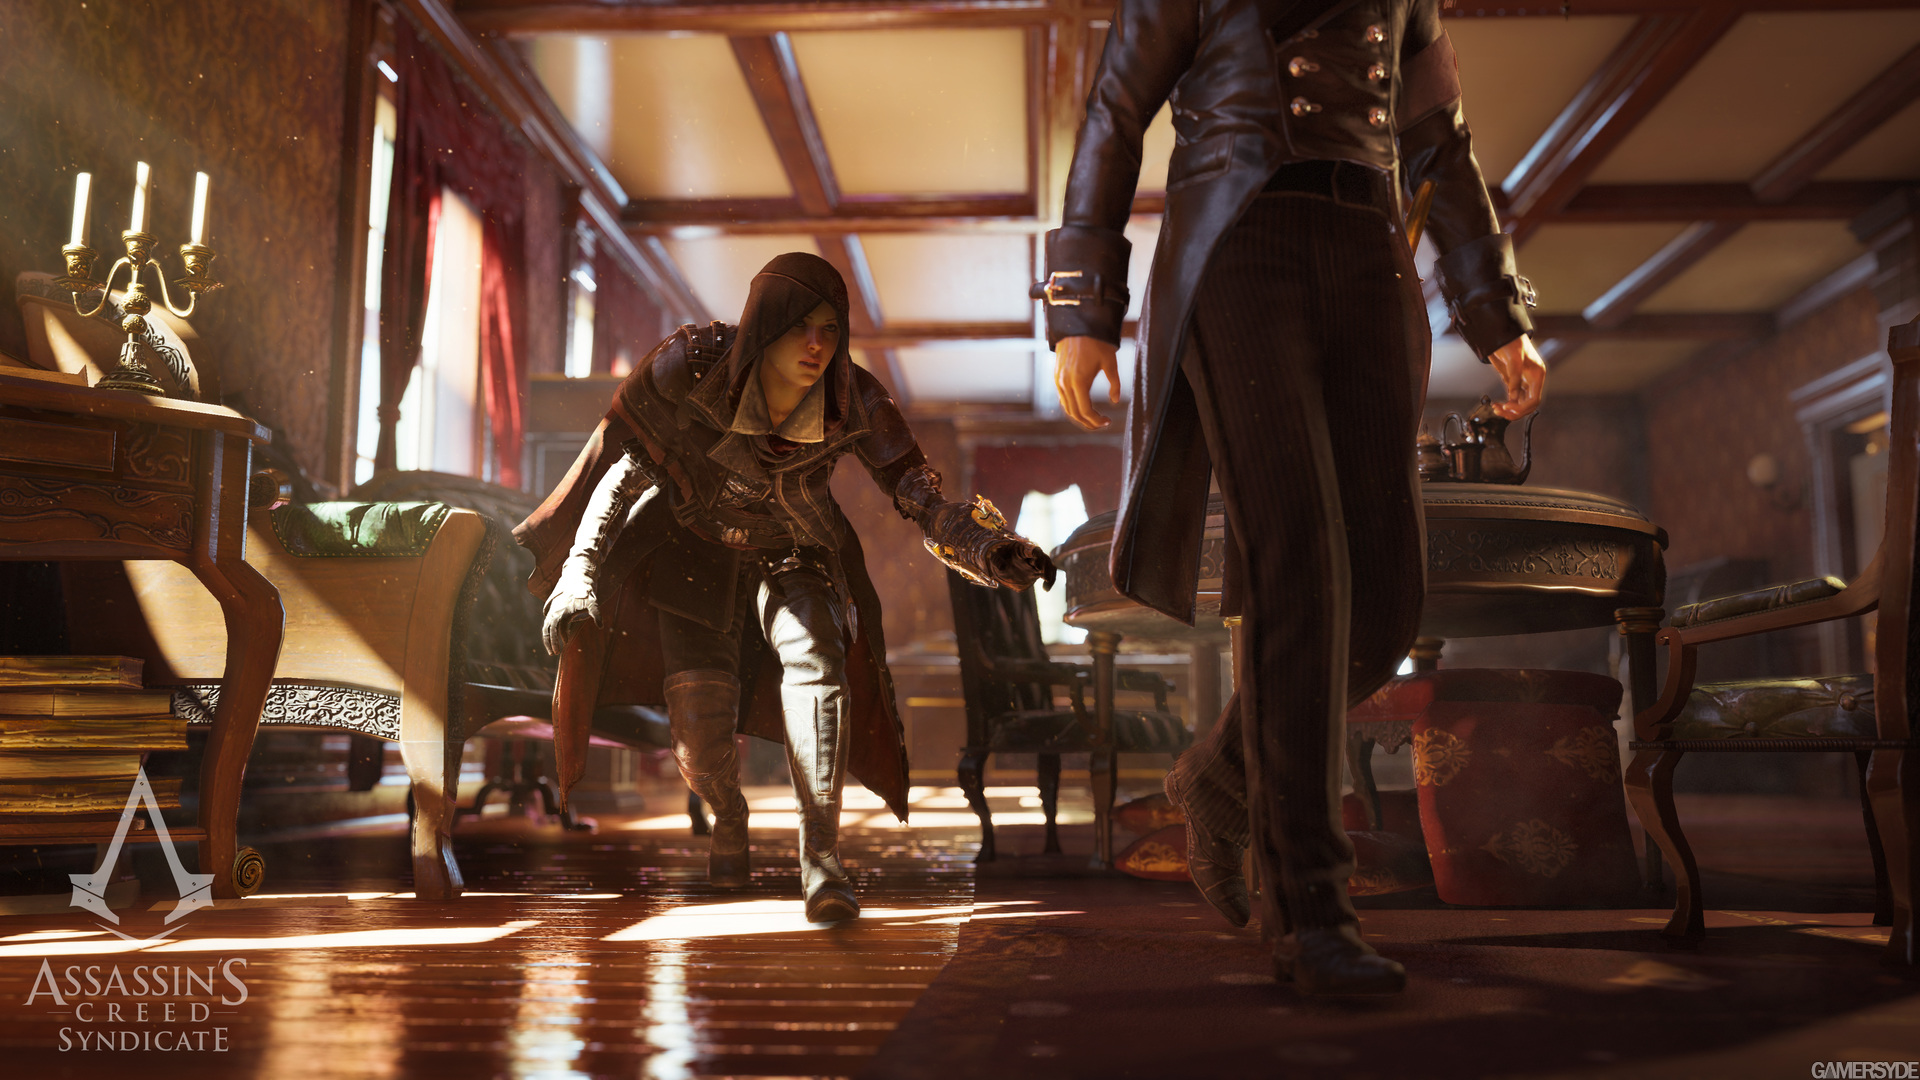 image_assassin_s_creed_syndicate-28625-3228_0001 (1)